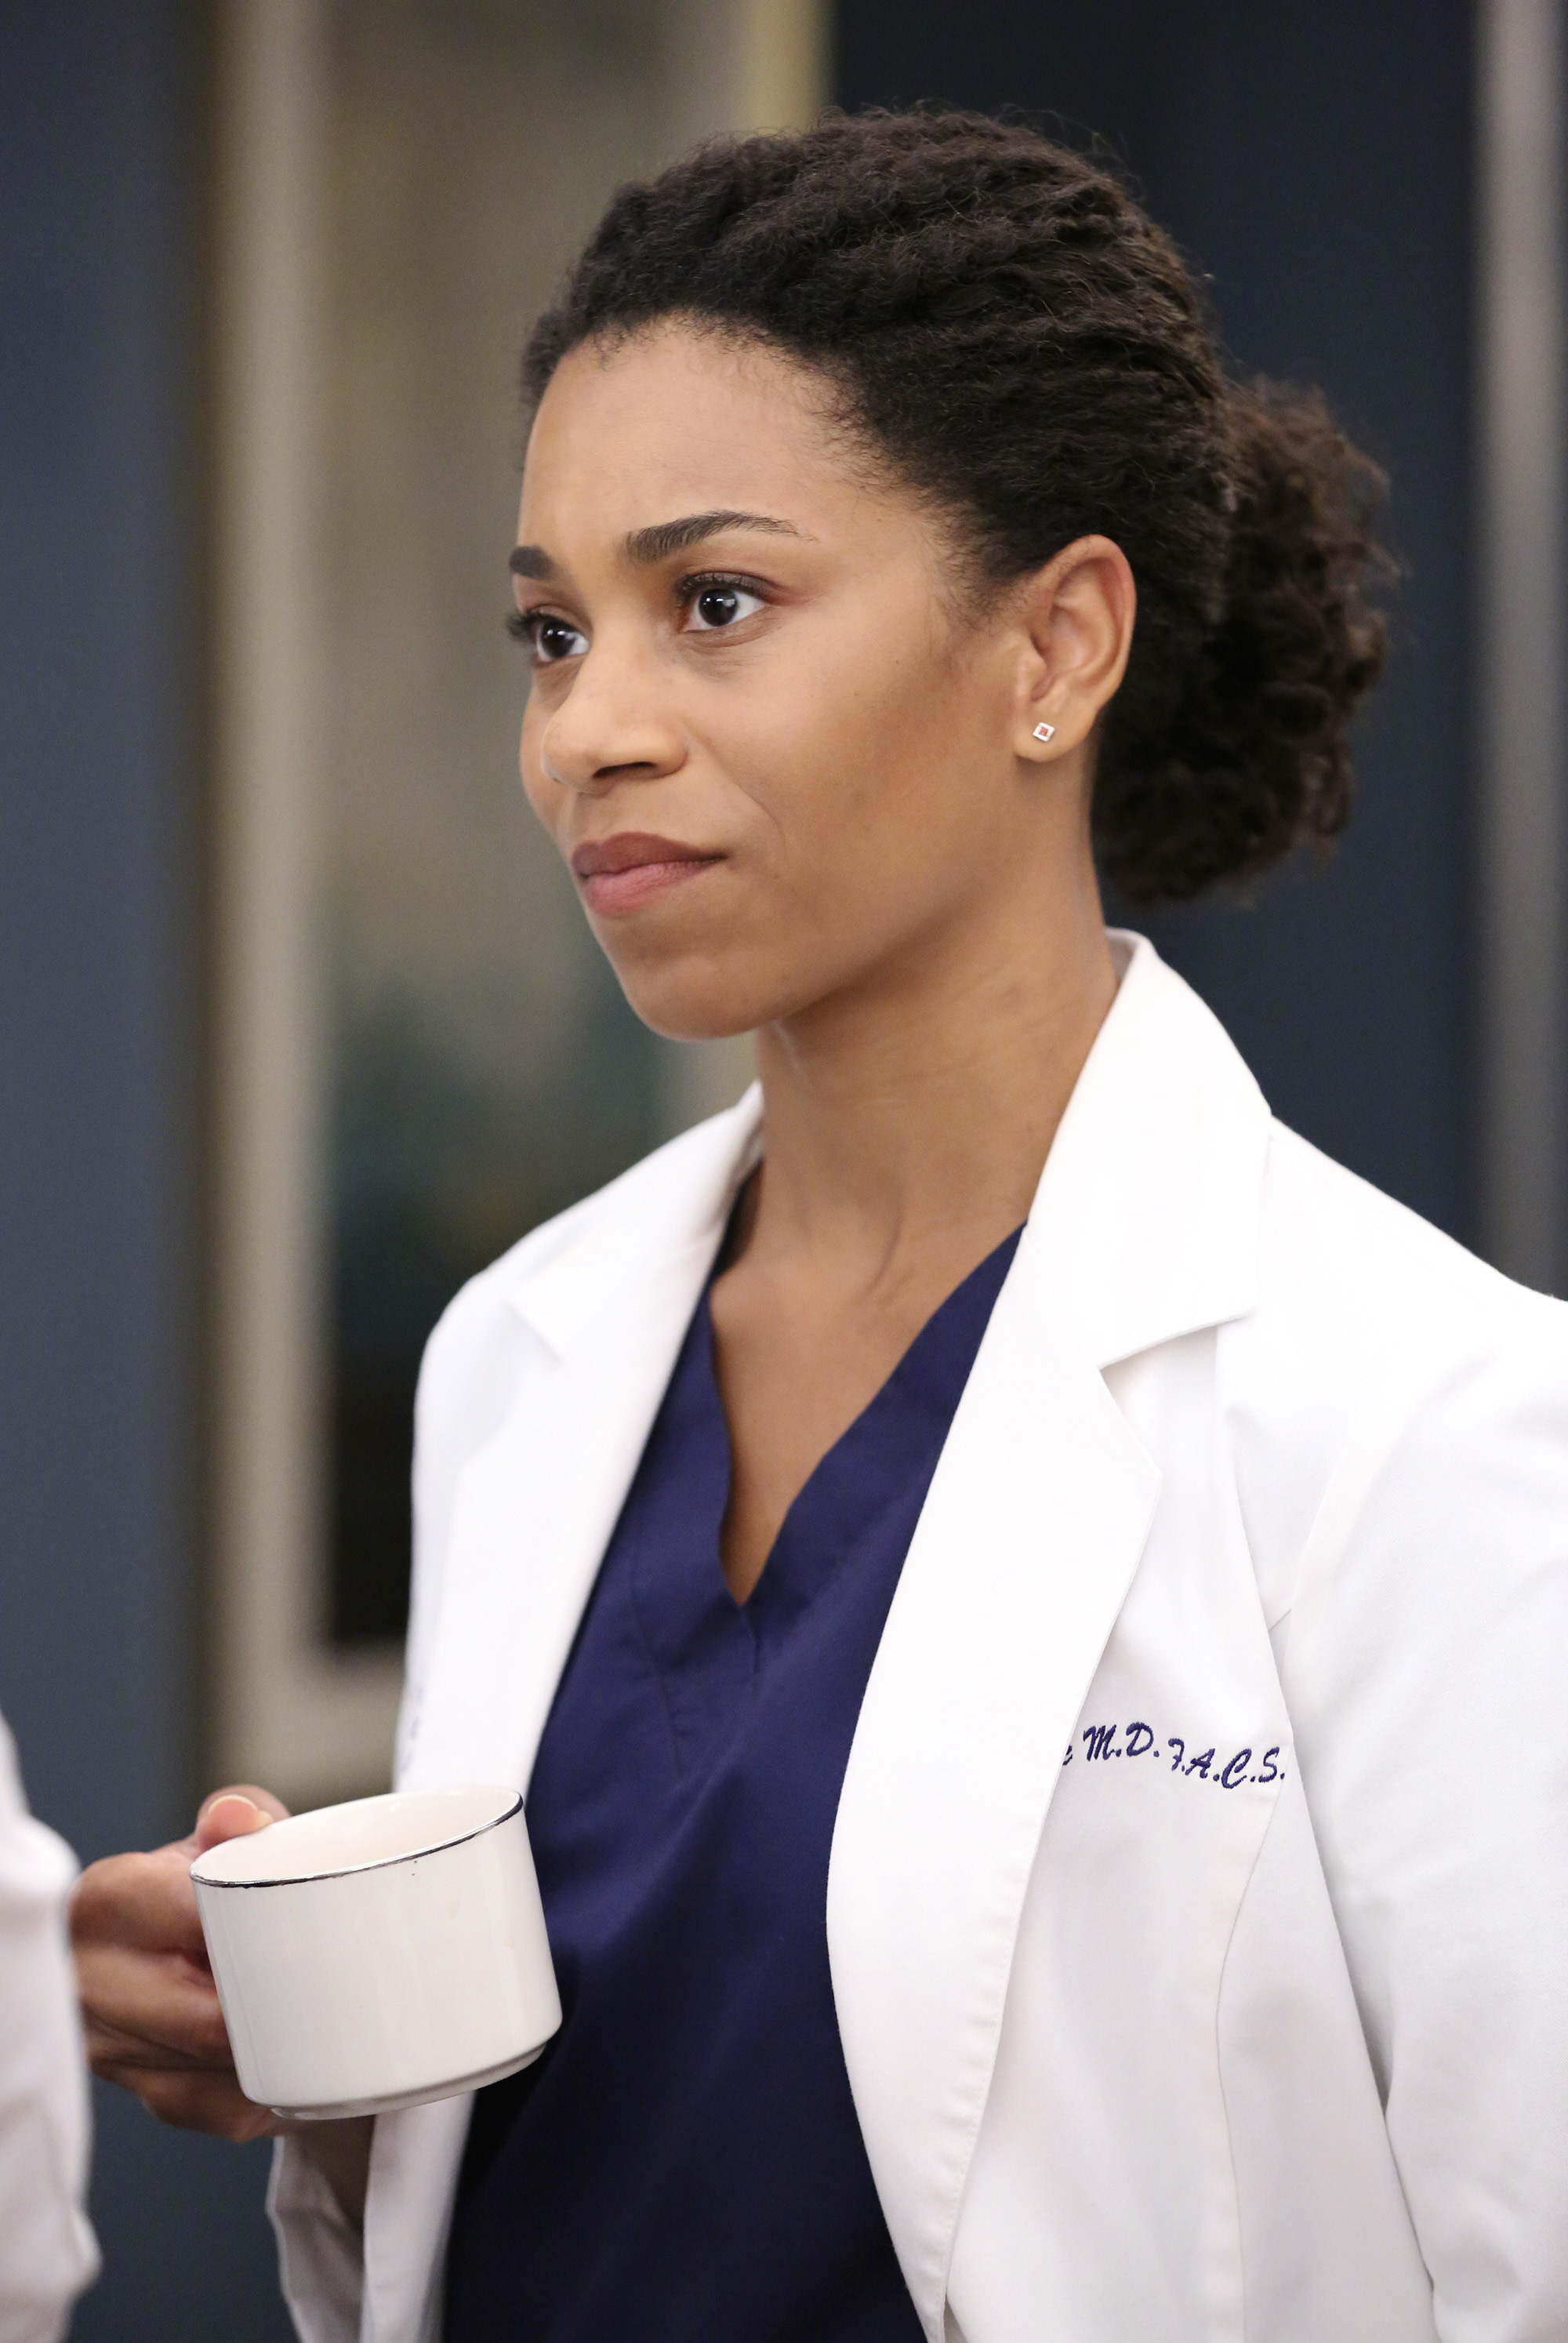 No. 12: Dr. Maggie Pierce